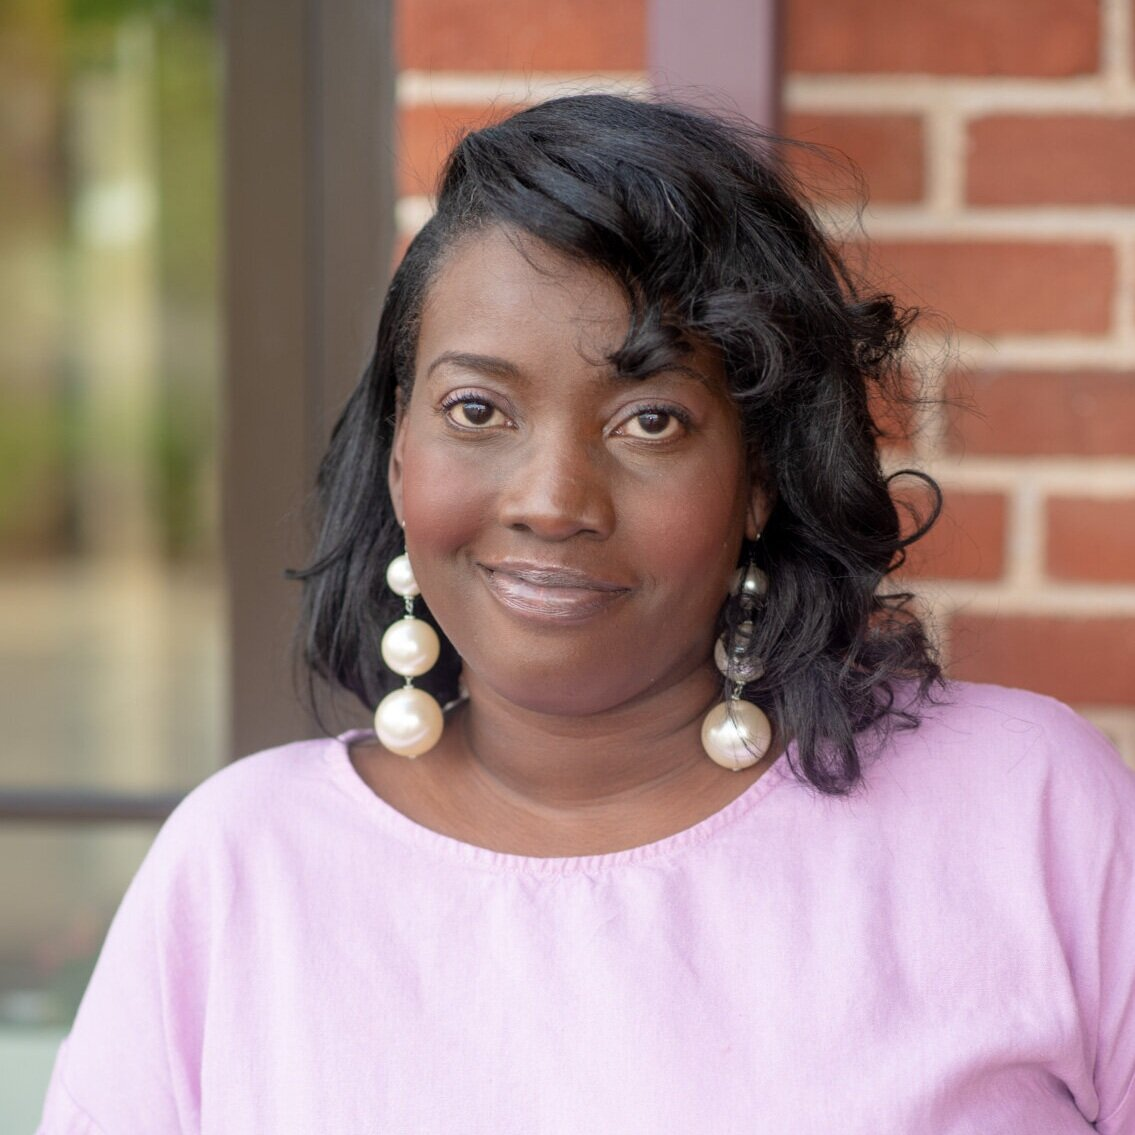 Keena Day | Dr. Carter G Woodson Leadership and Learning Village